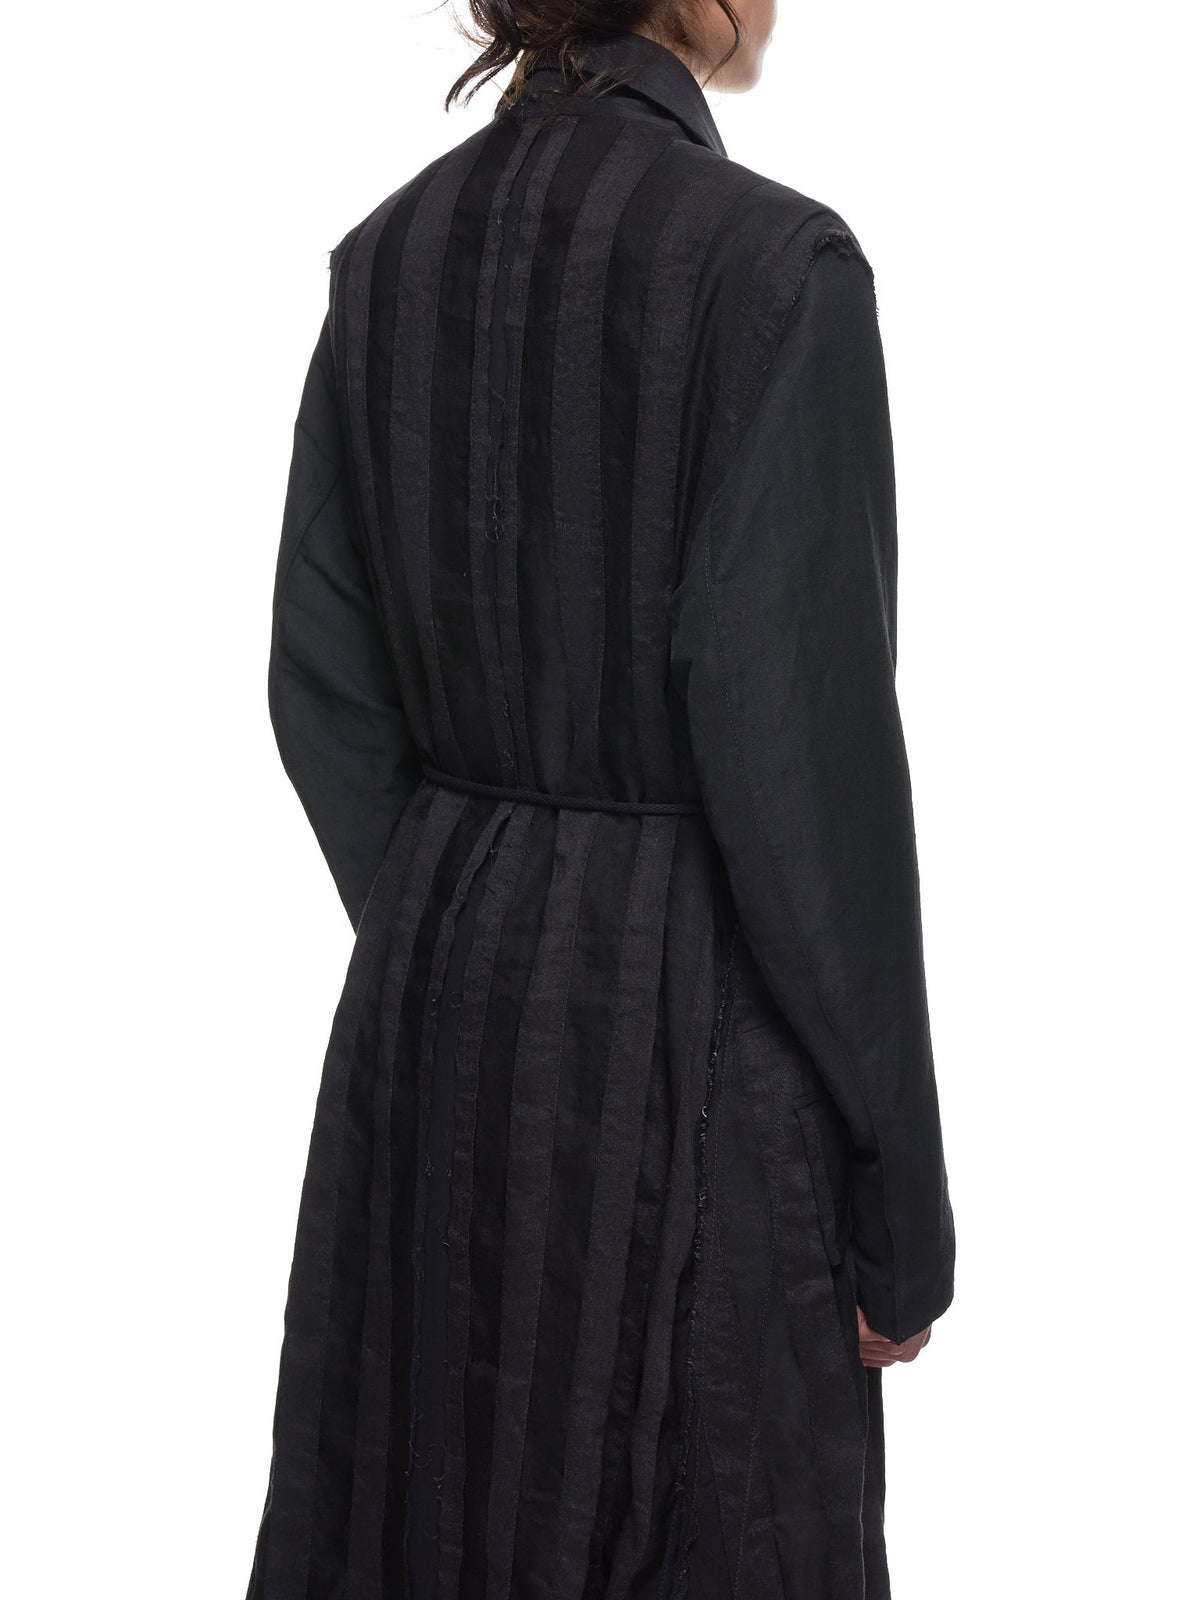 'Francis Coat' (1901-1140-176-099-BLACK)